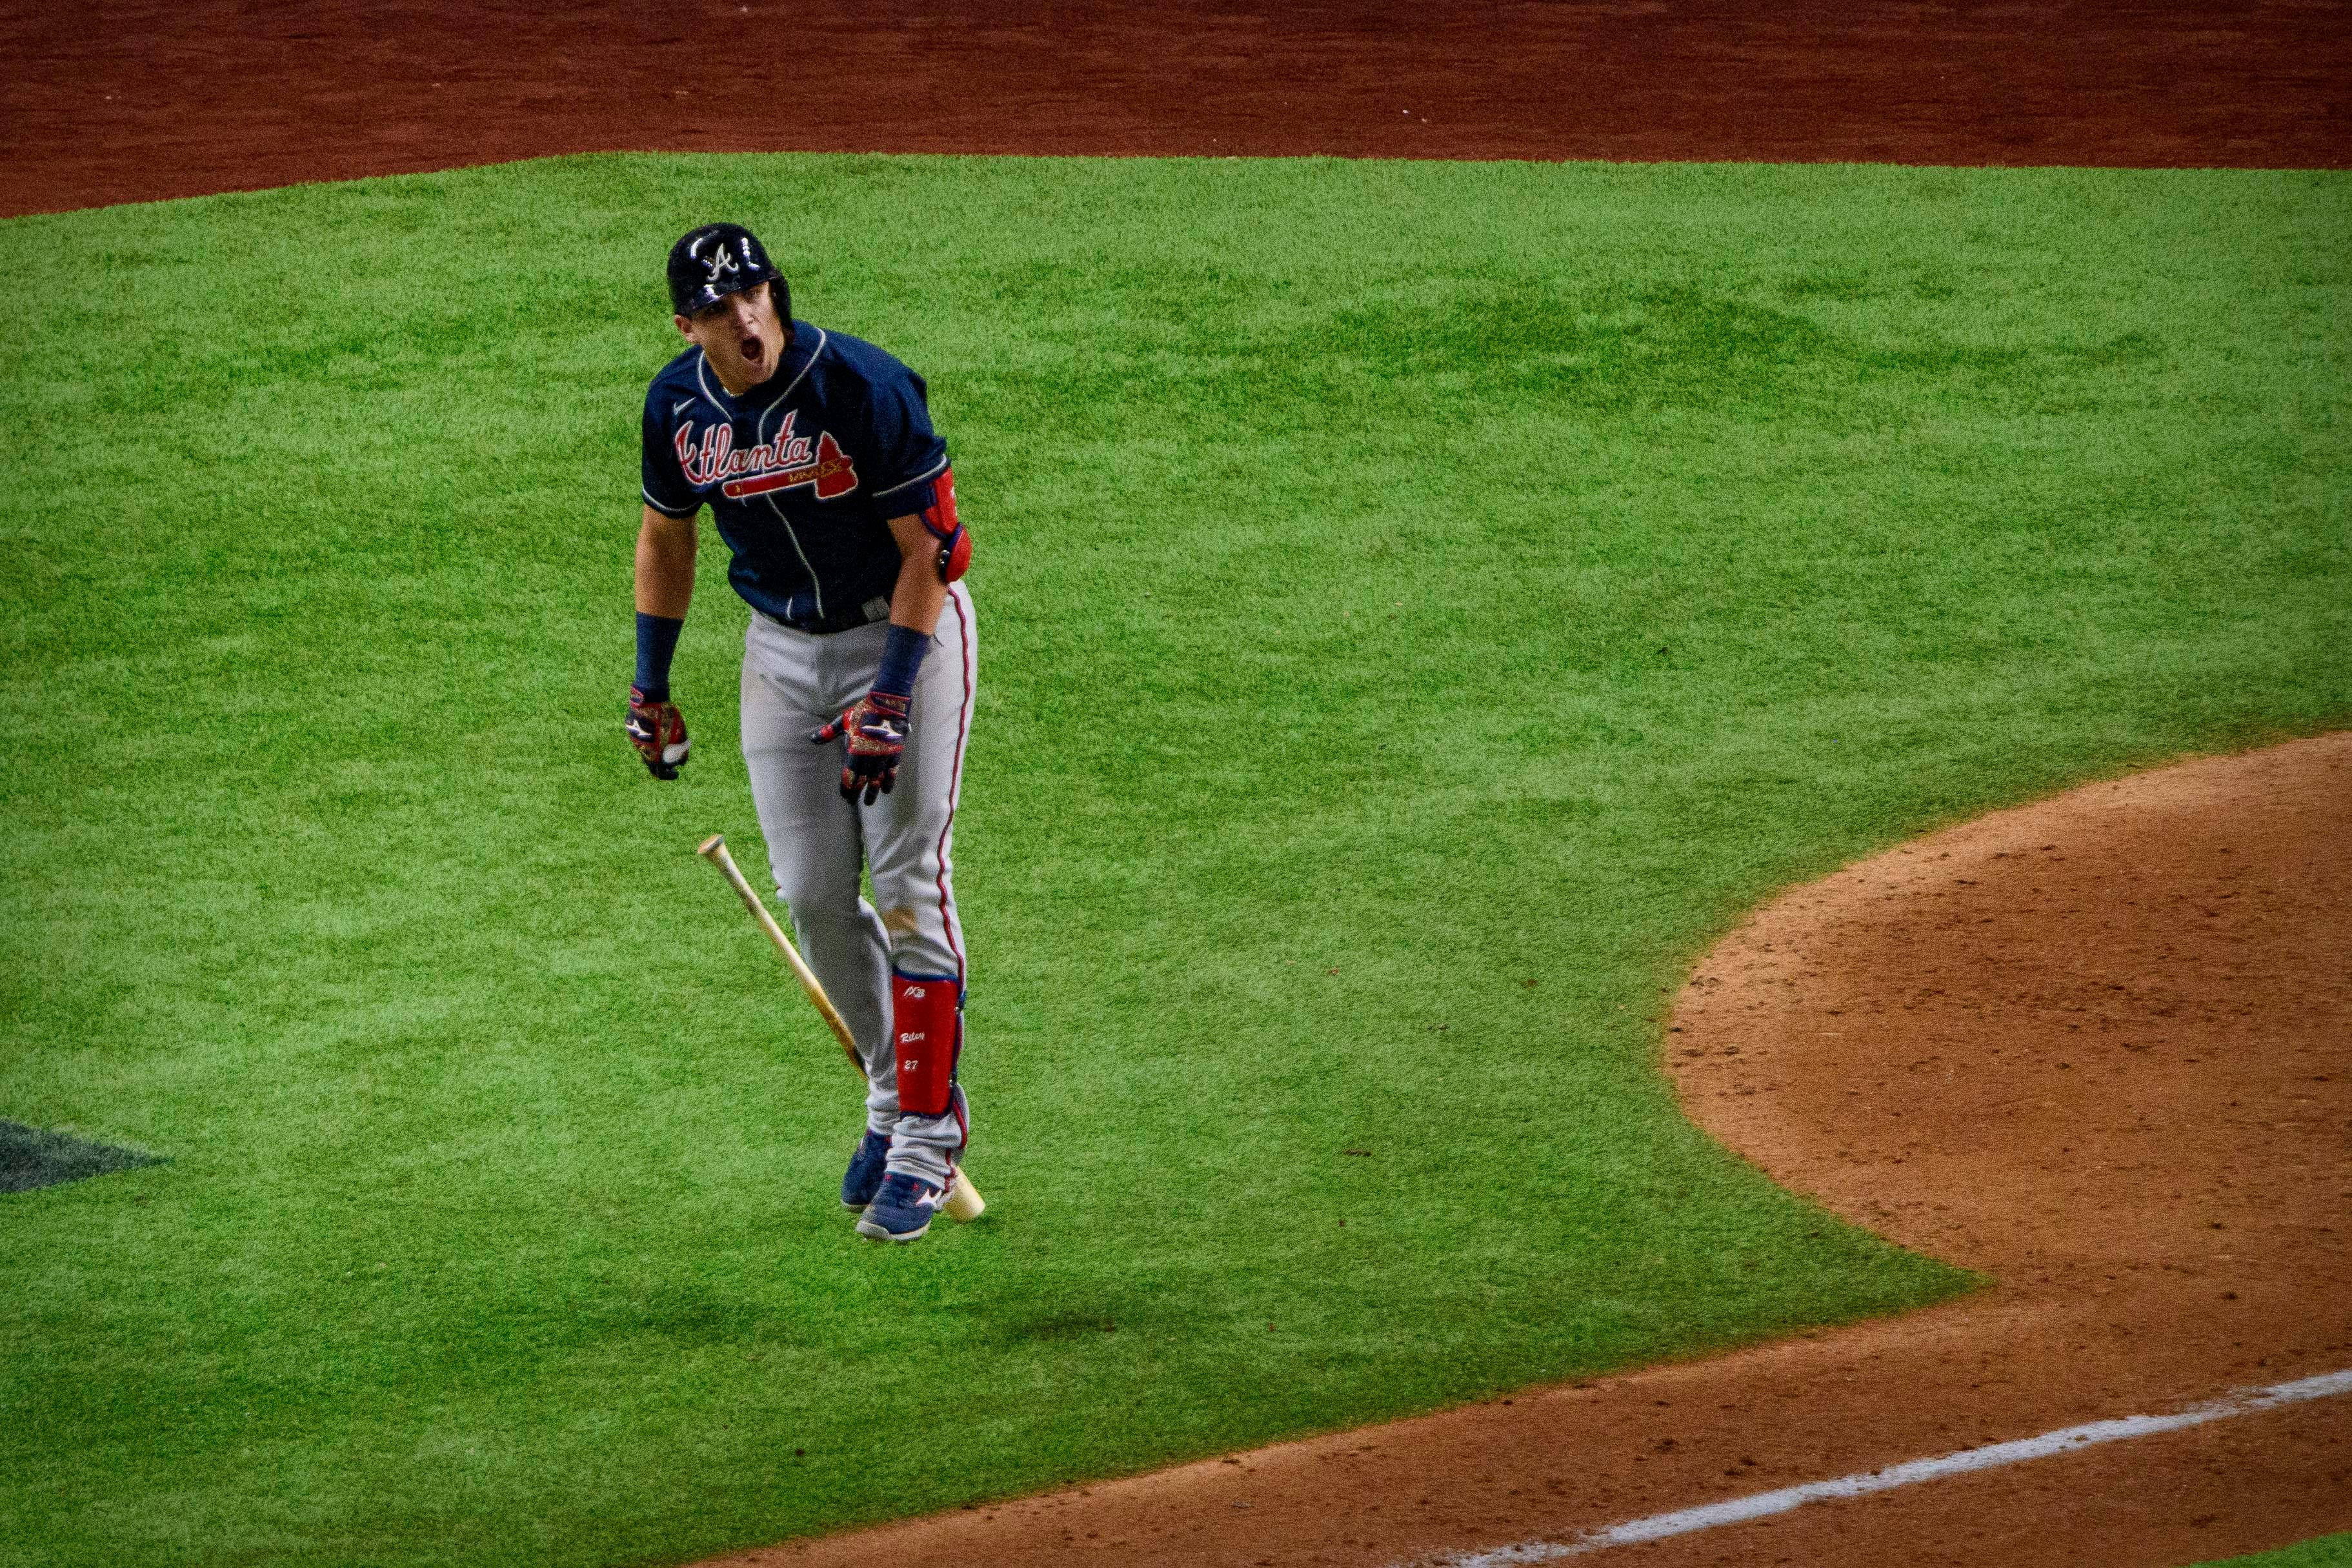 Braves break out with two homers in ninth inning, beat Dodgers 5-1 in Game 1 of NLCS